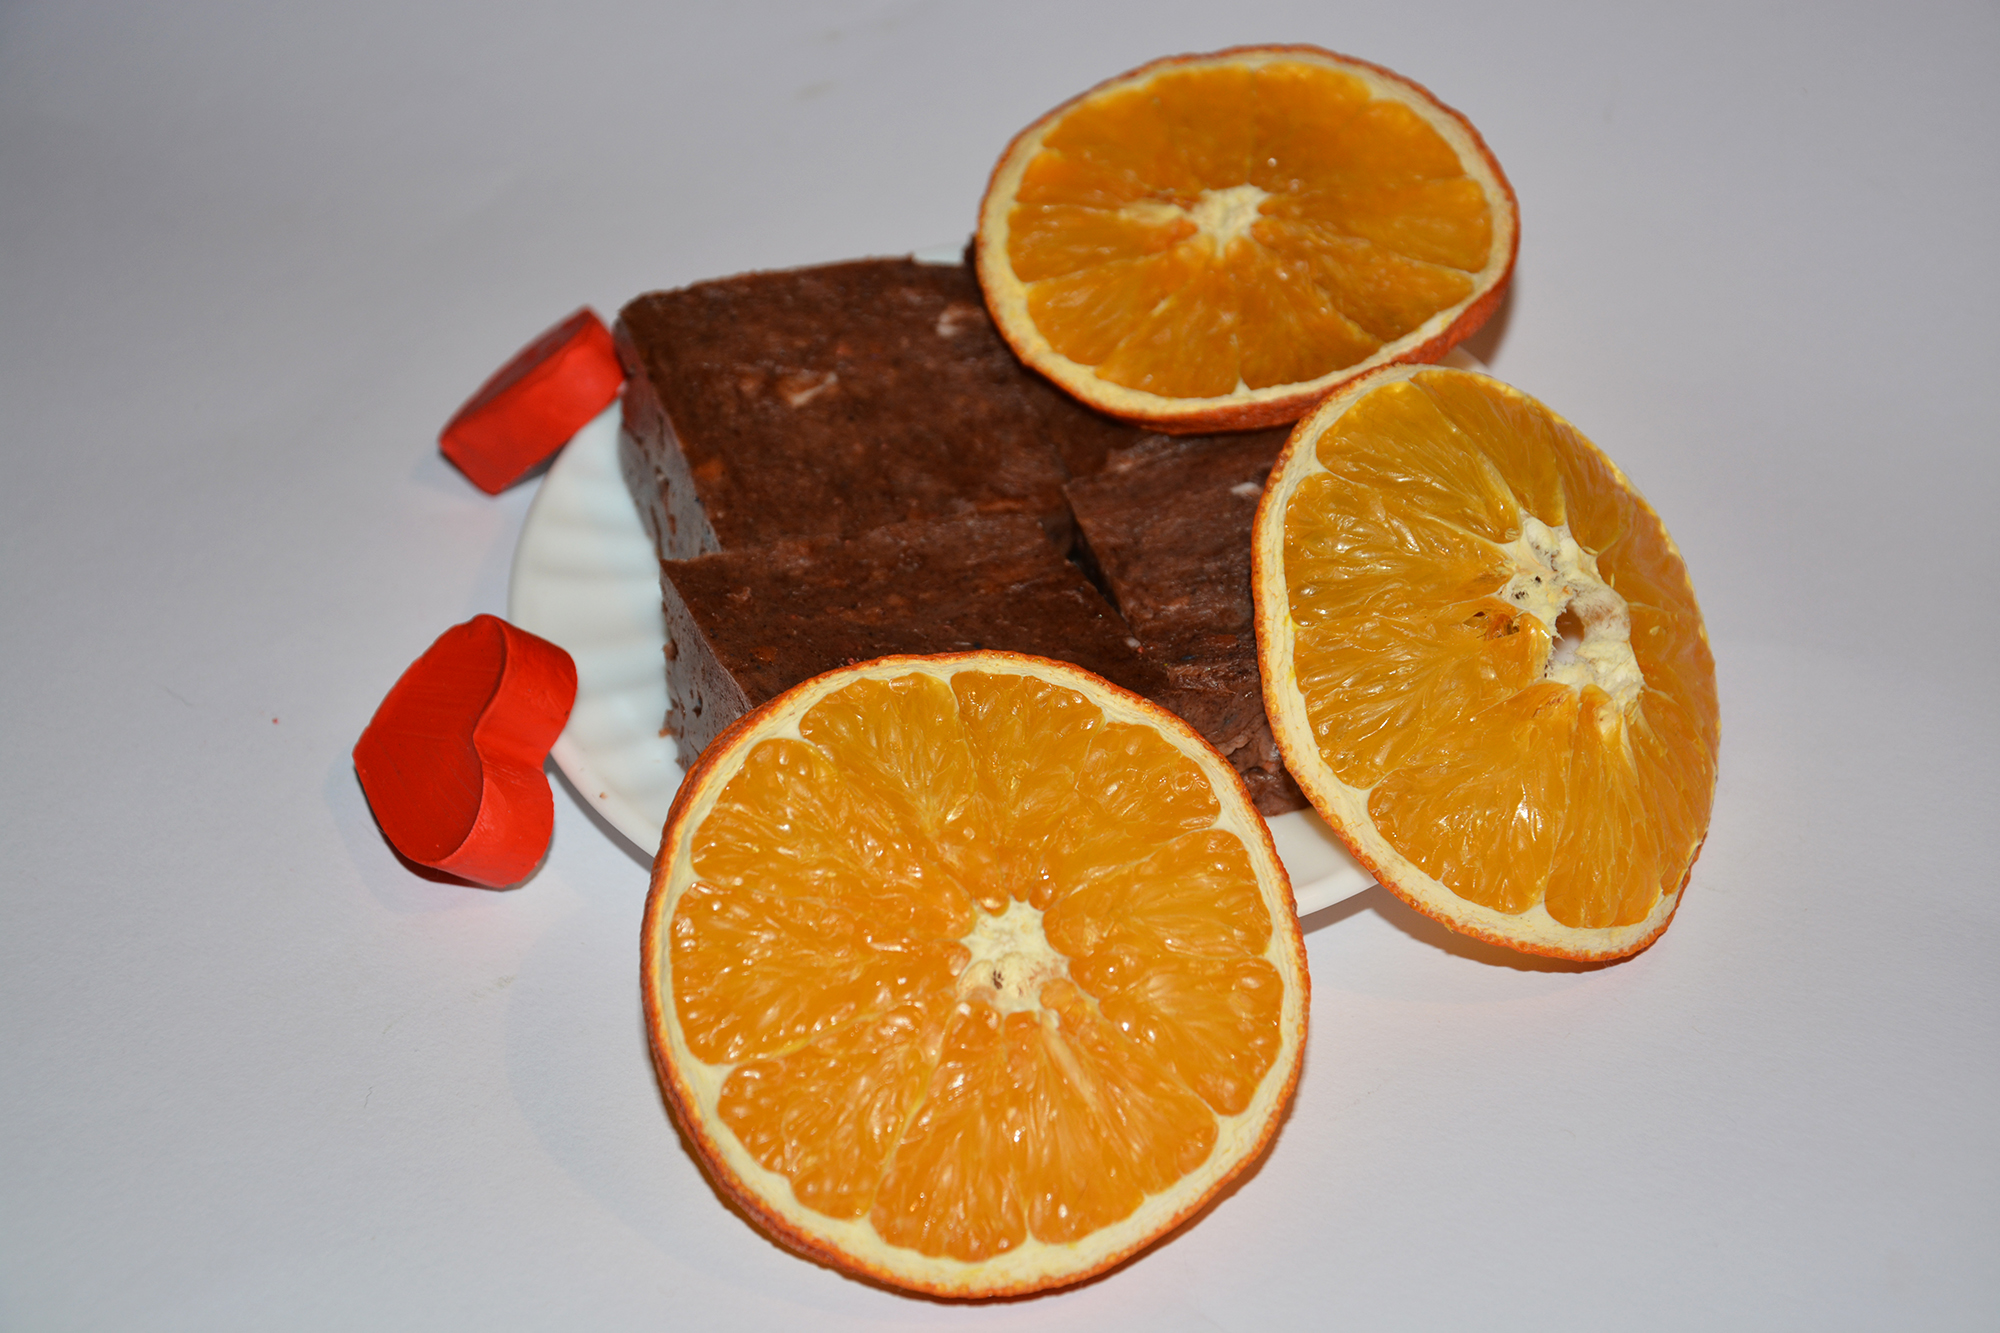 Cinnamon spiced soap with orange